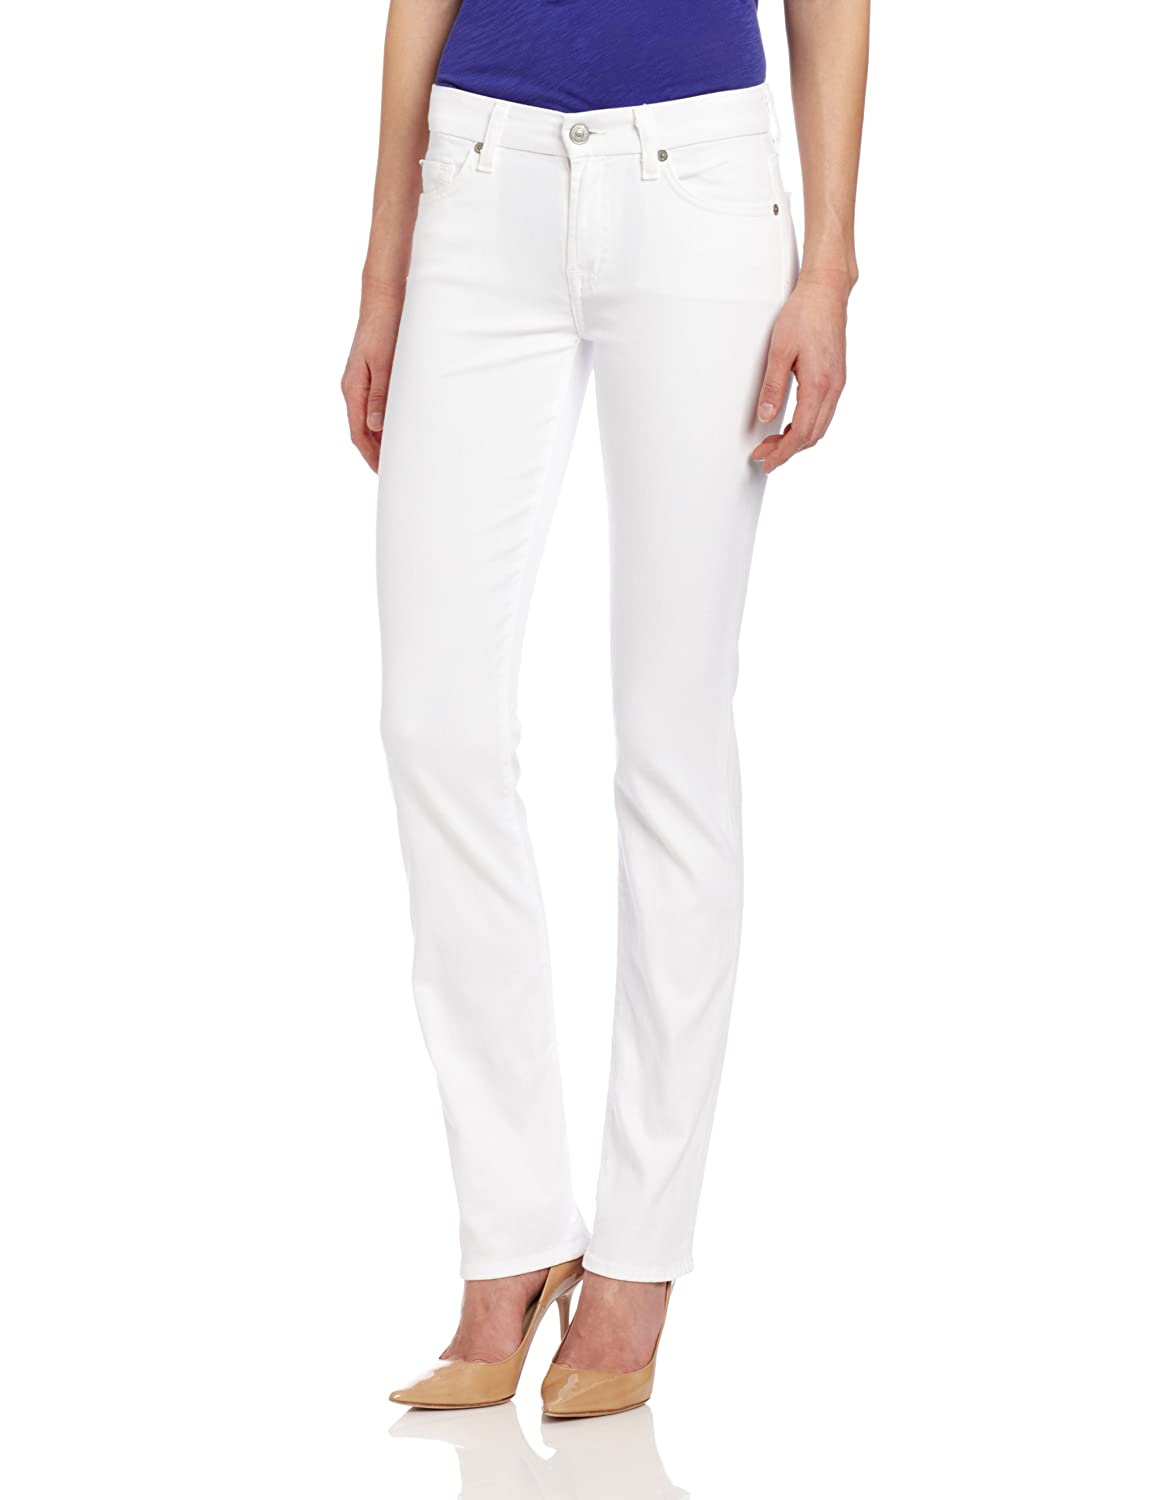 7 For All MankInd Women's Kimmie Straight Jean In Clean White